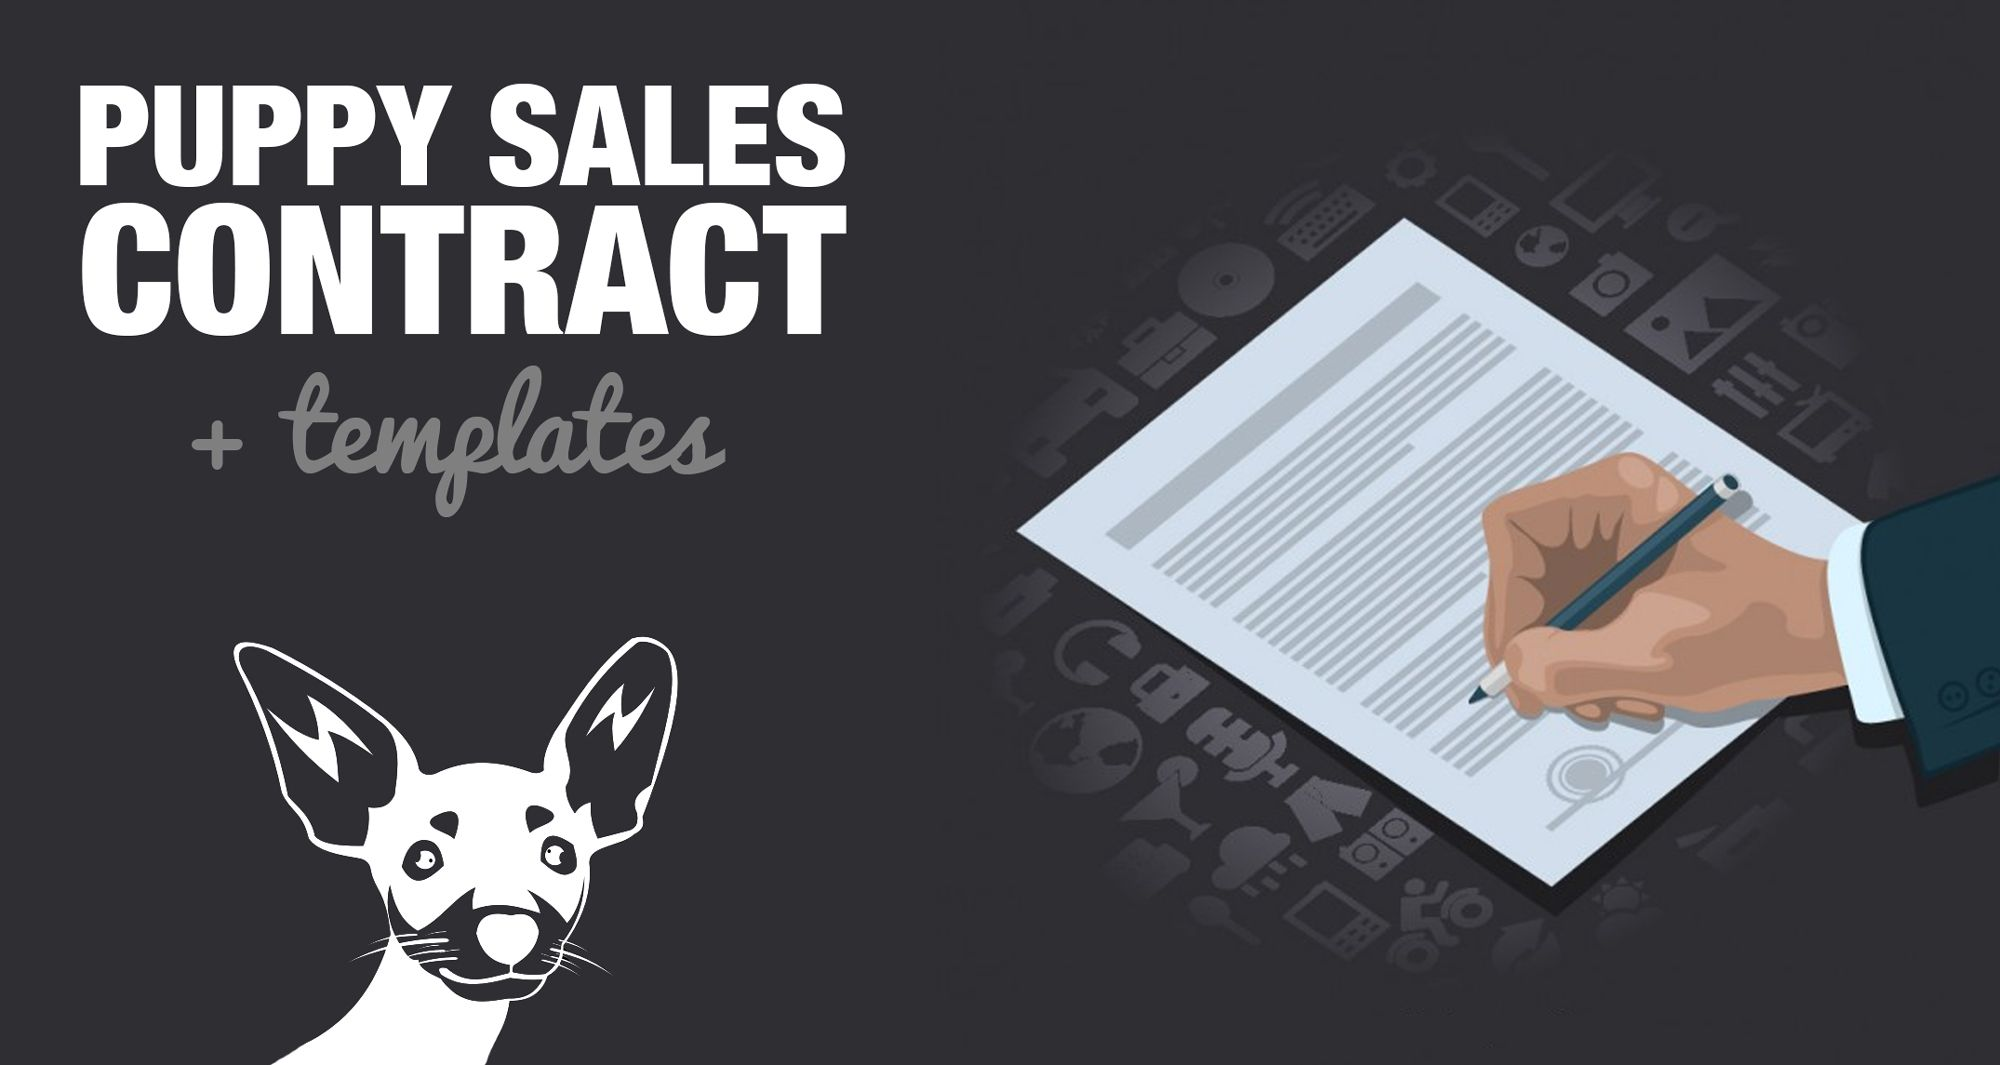 Free Puppy Sales Contract Template & Word/DOC Sample | Pinterest